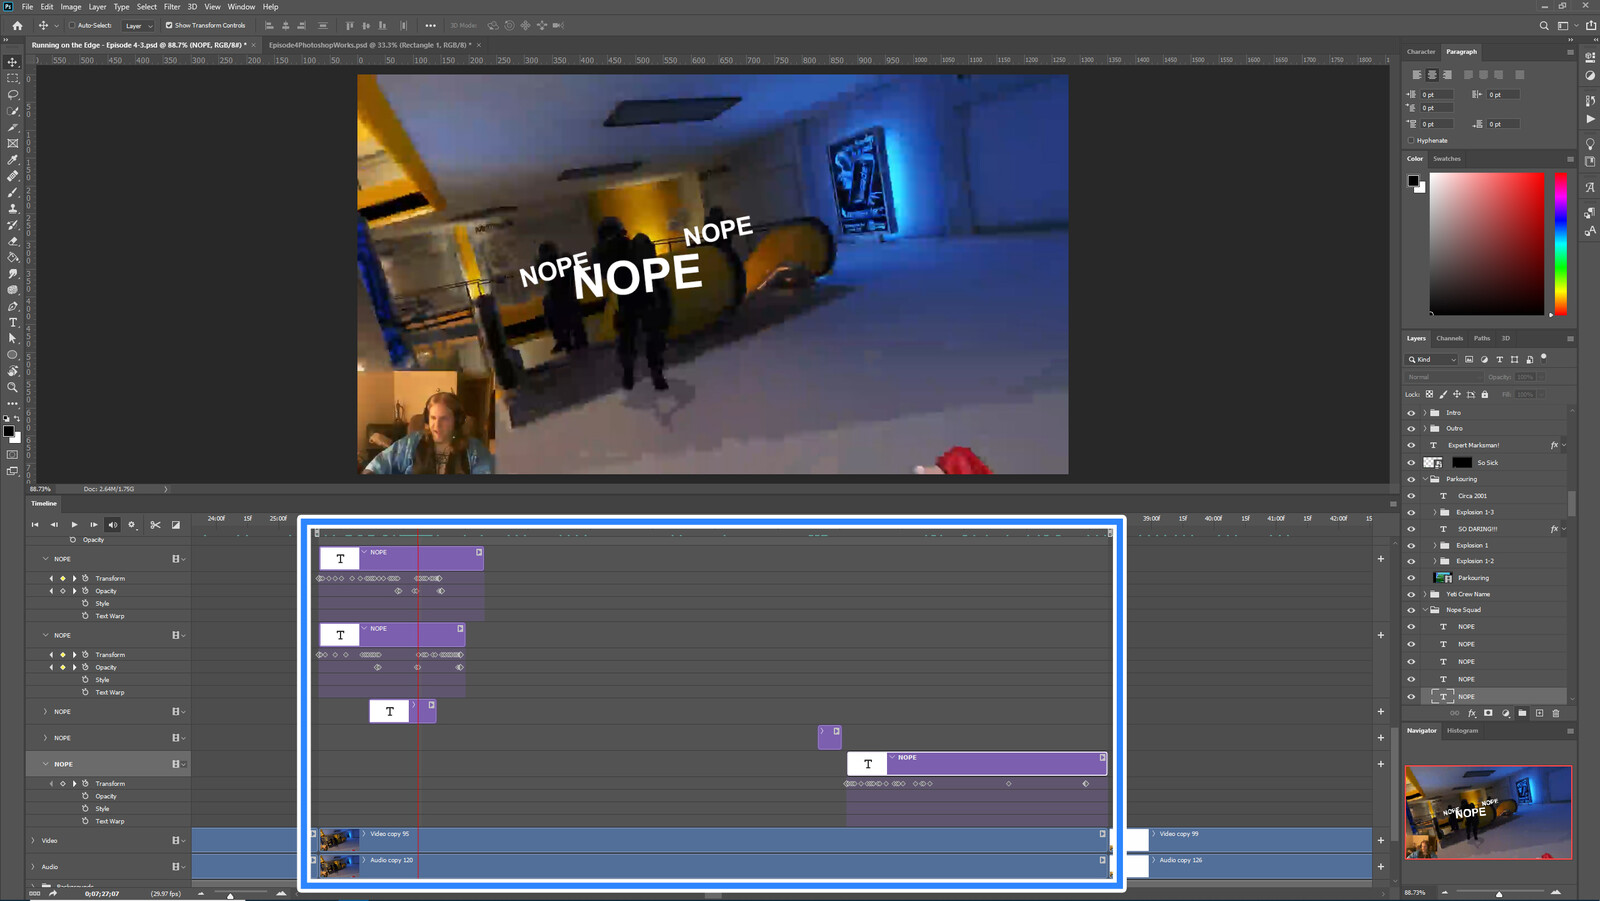 """The """"Nope Squad"""" visual effect within Photoshop video editor"""